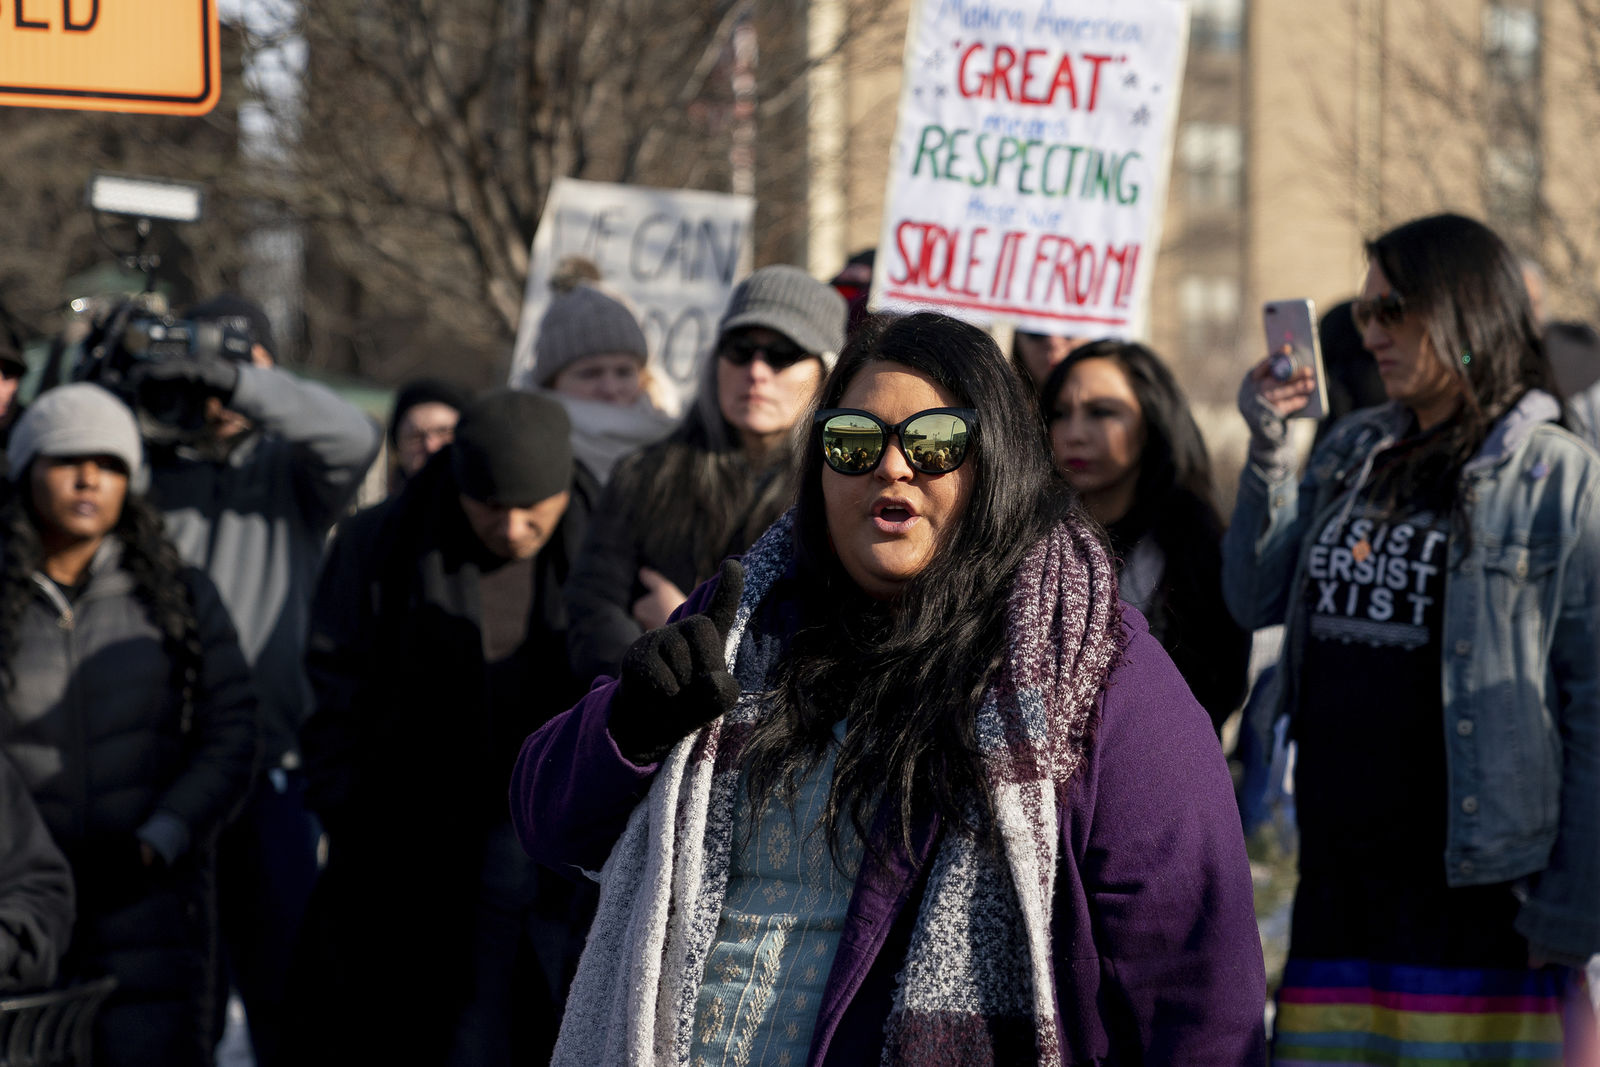 Carolina A. Castoreno-Santana, Executive Director of the American Indian Center of Indiana, speaks during a gathering in support of Native Americans in front of the Catholic Diocese in Covington, Ky., Tuesday, Jan 22, 2019. (AP Photo/Bryan Woolston)